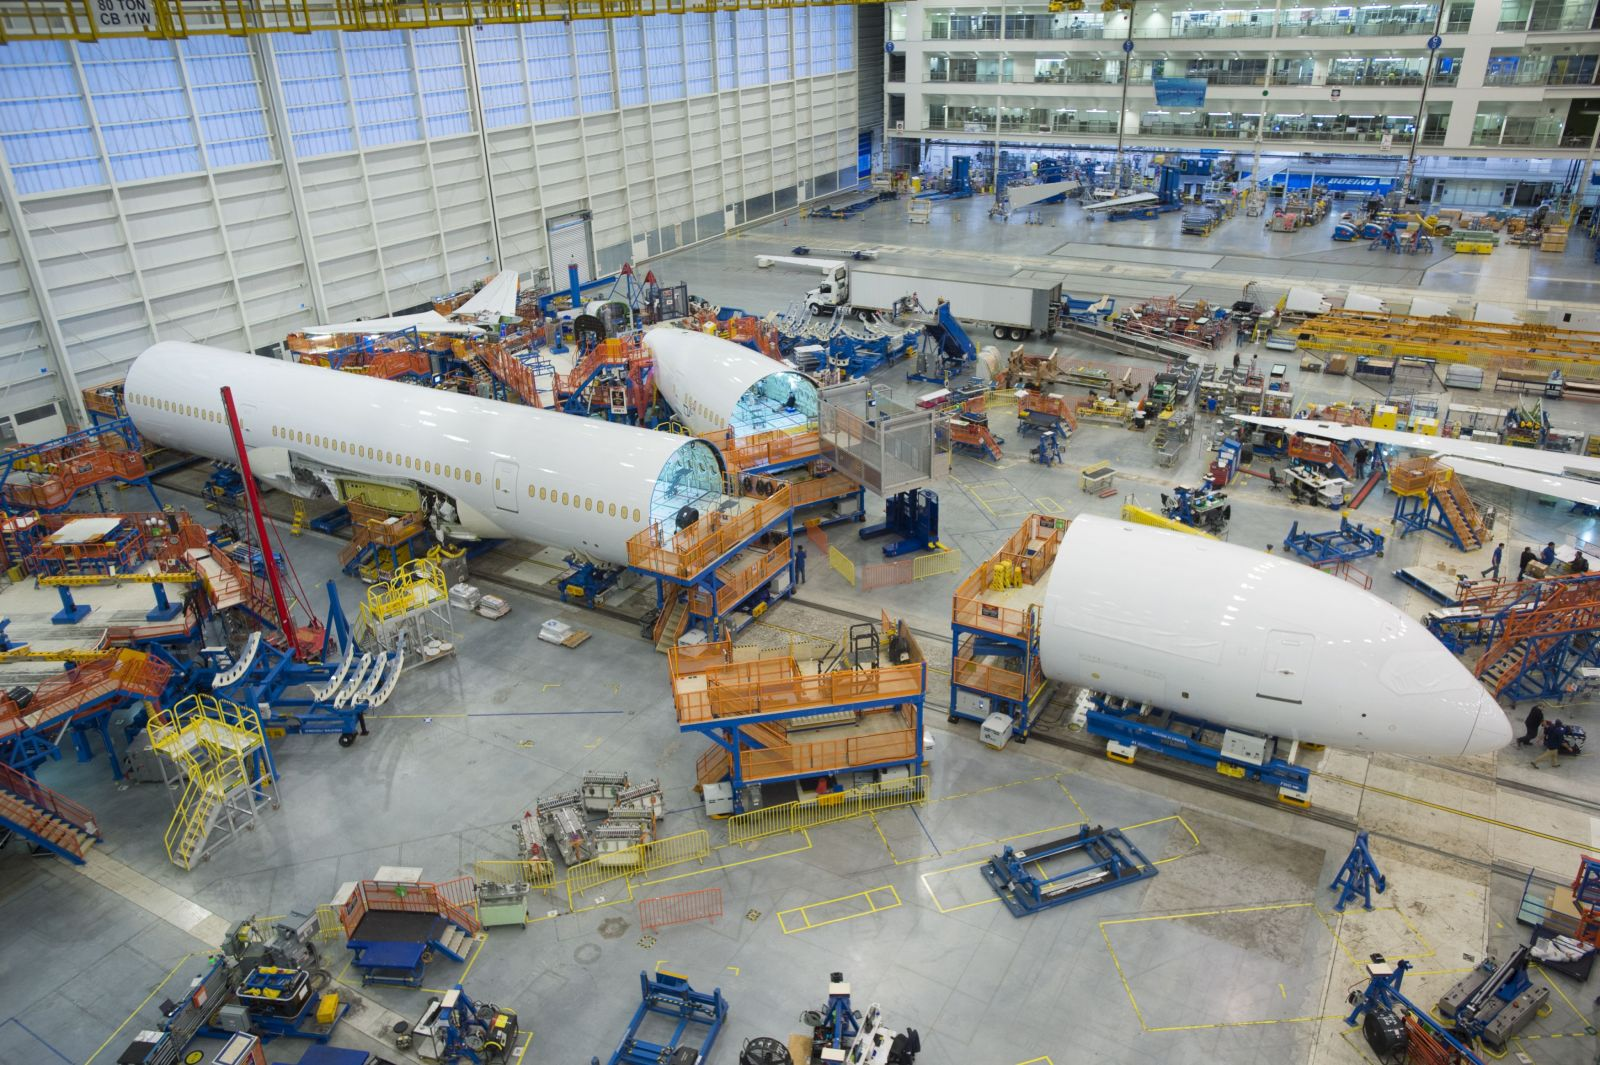 The Boeing 787-10 entered final assembly late last year. Its rollout Friday could coincide with a visit from President Donald Trump, which has been rumored but not confirmed. (Photo/Boeing)